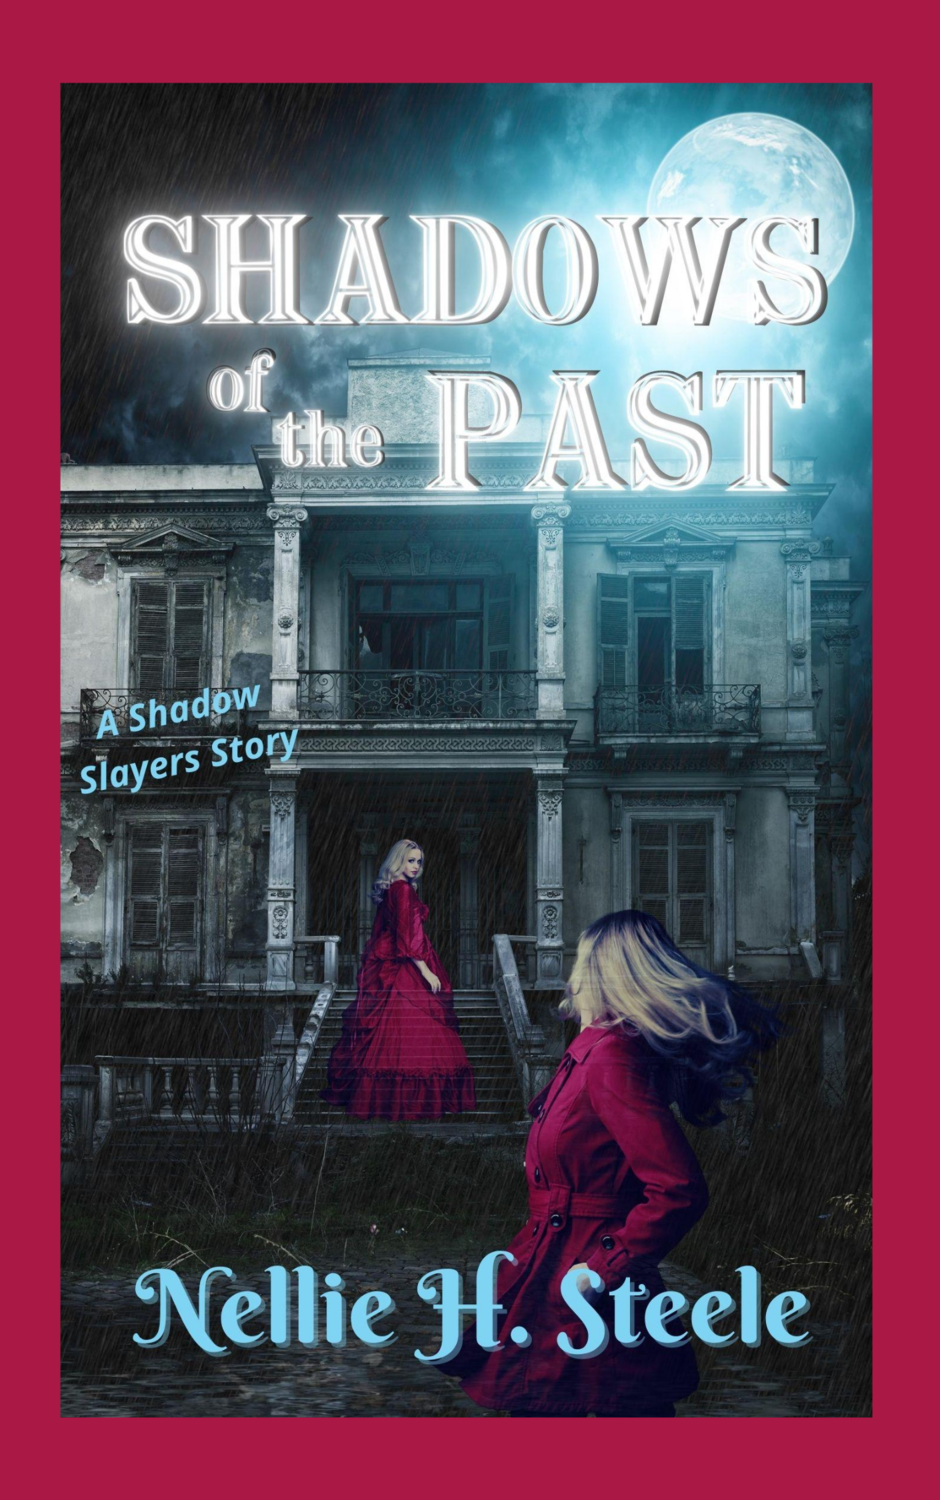 Personalized Signed Copy - Shadows of the Past